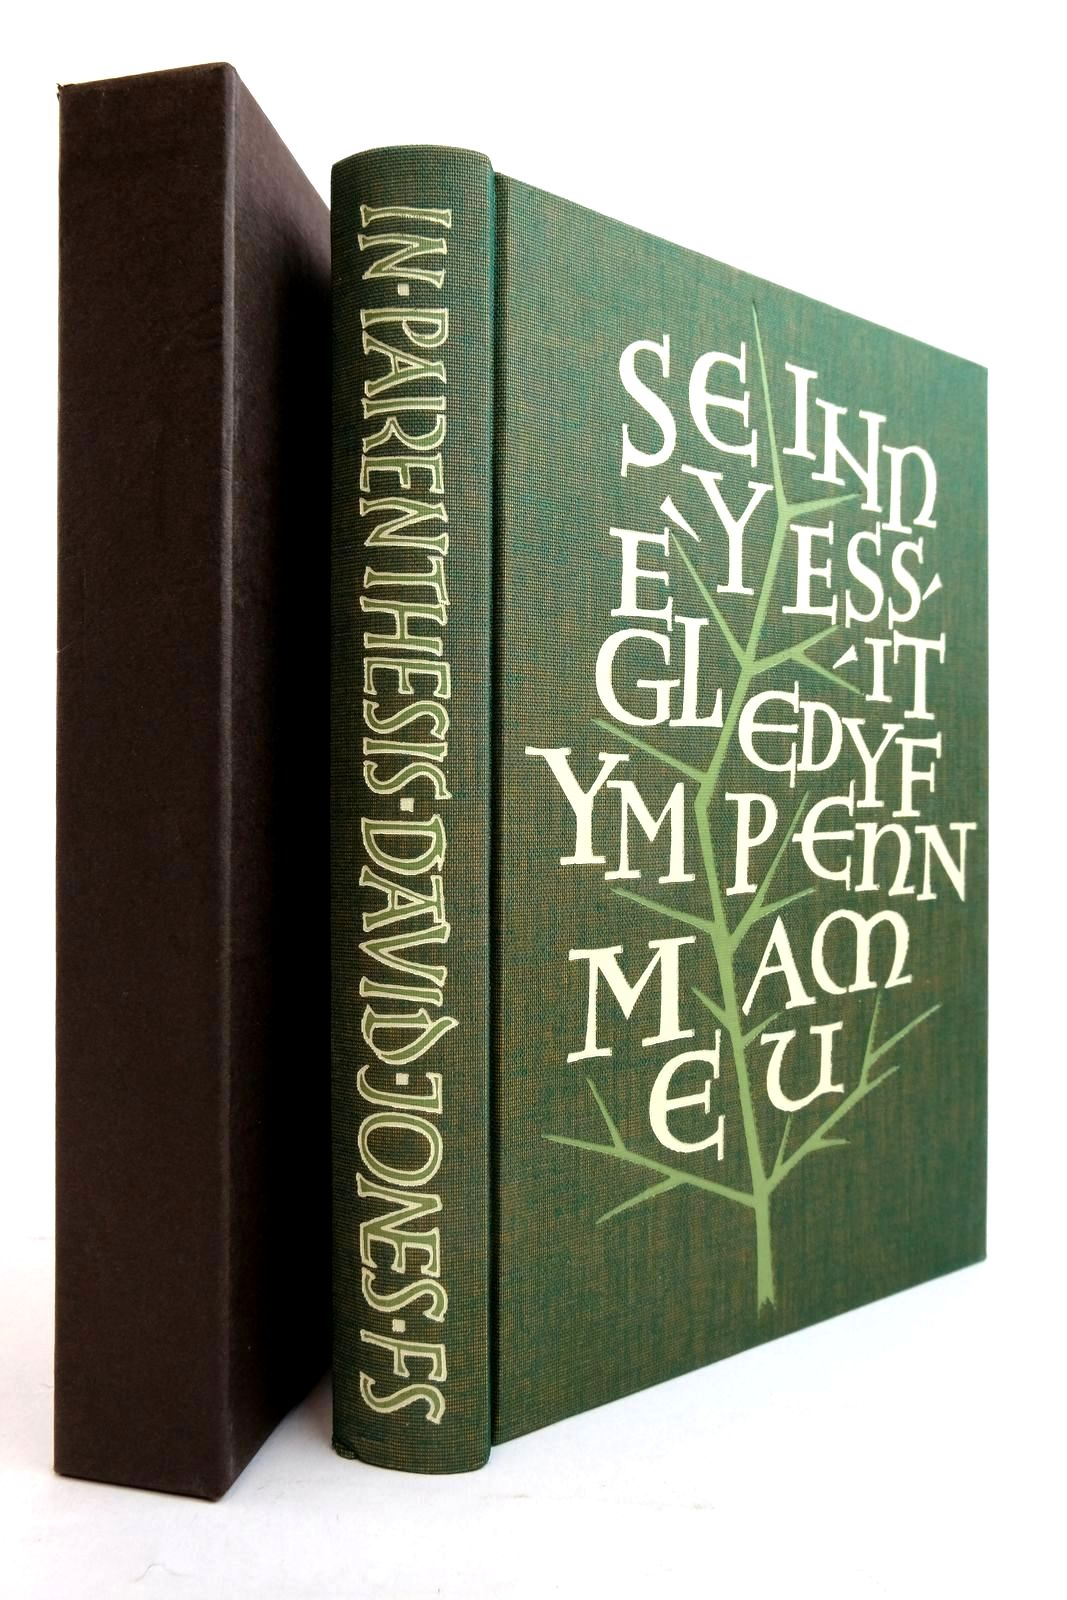 Photo of IN PARENTHESIS written by Jones, David Eliot, T.S. Bloom, Harold illustrated by Clayton, Ewan published by Folio Society (STOCK CODE: 2134493)  for sale by Stella & Rose's Books